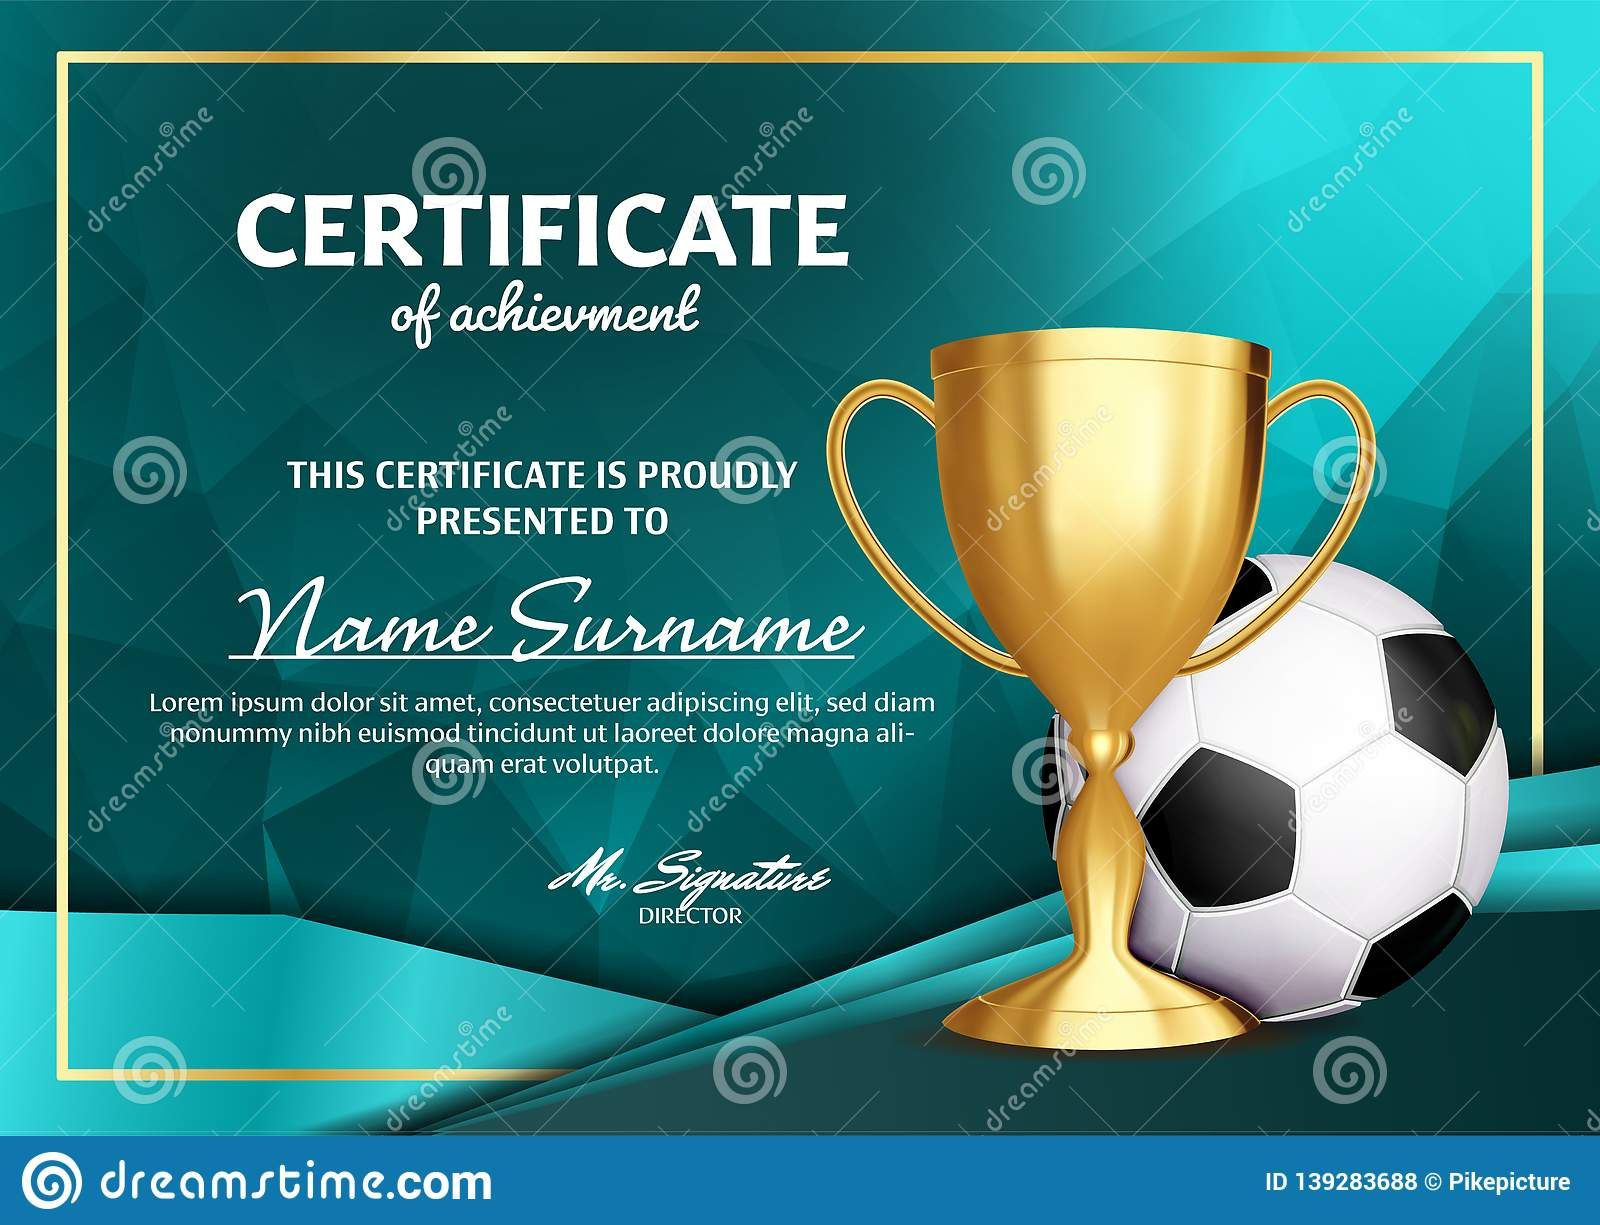 Soccer Certificate Diploma With Golden Cup Vector Football Throughout Soccer Certificate Temp Soccer Awards Certificate Templates Awards Certificates Template Free soccer certificate templates for word